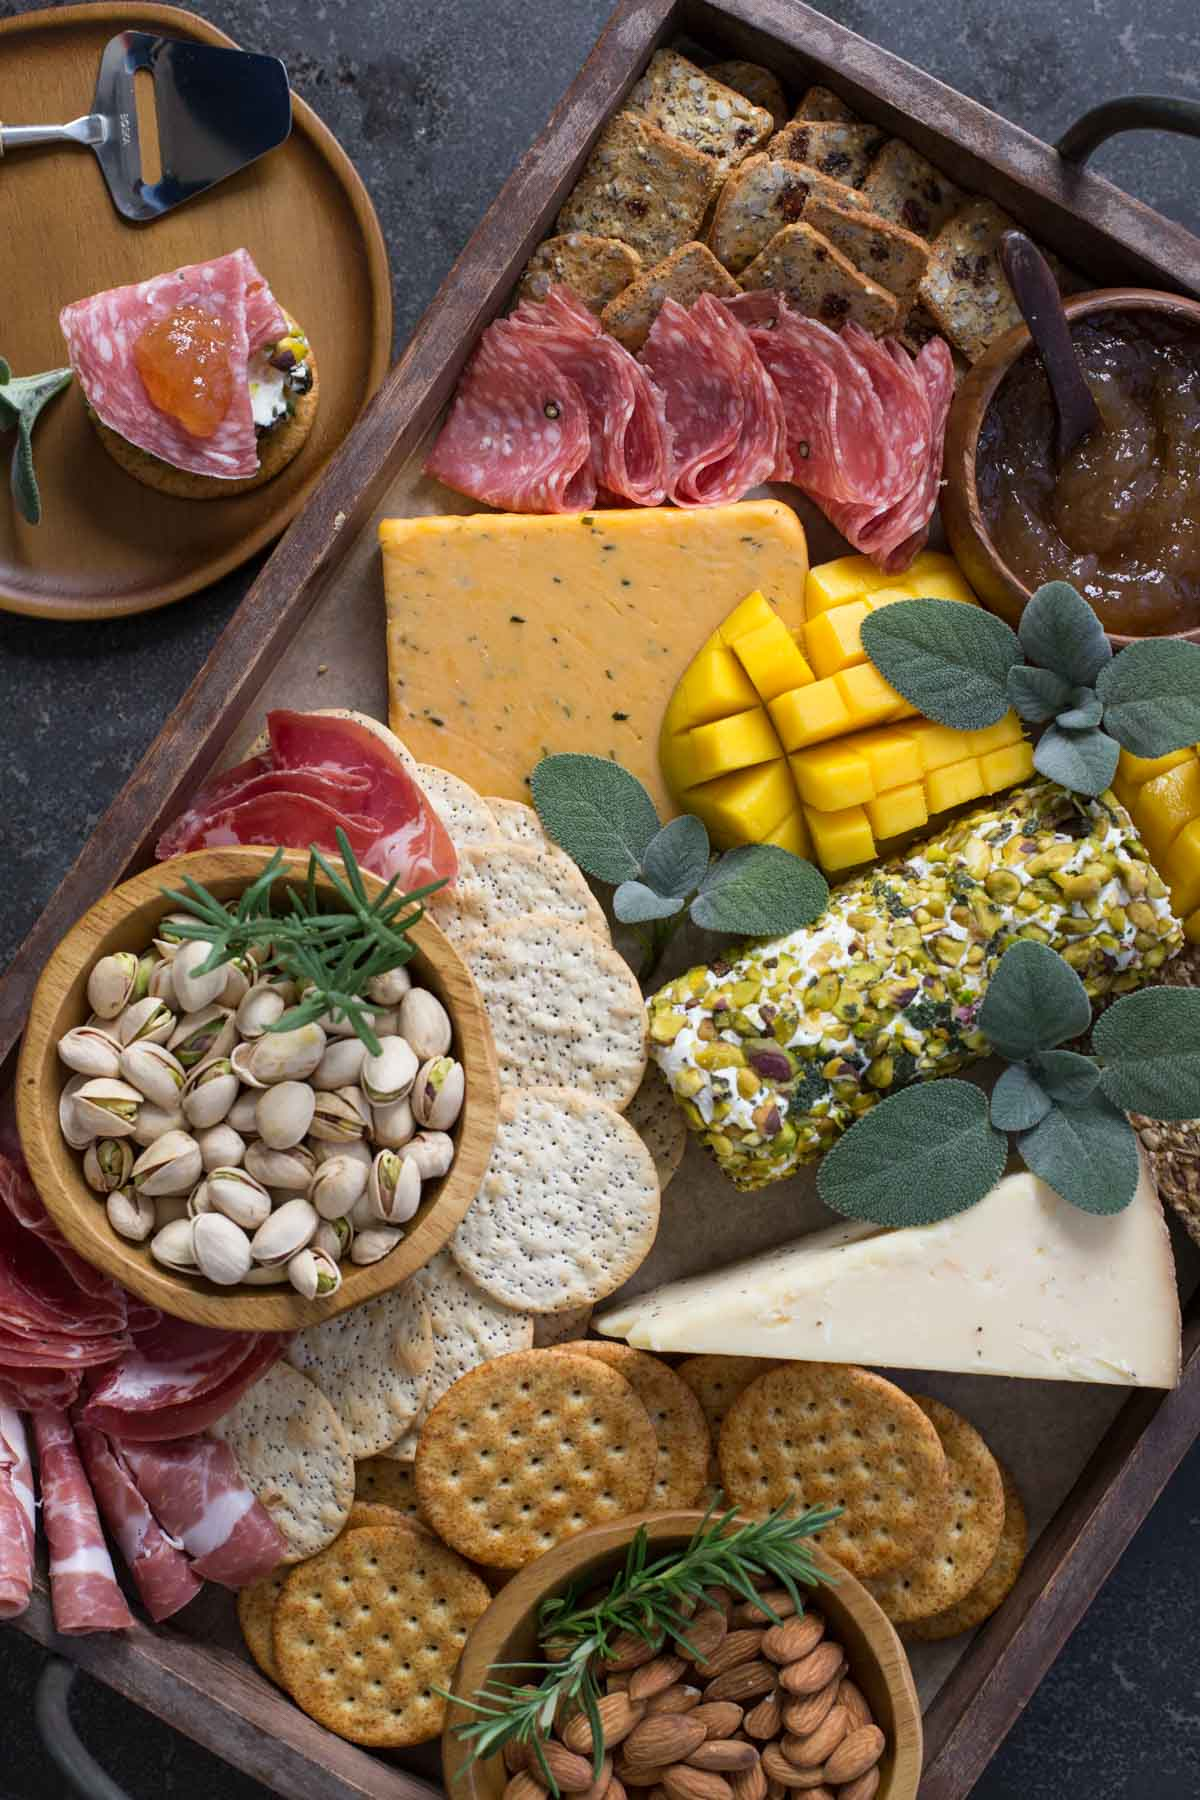 Pistachio Crusted Cheese Log displayed as part of a charcuterie.